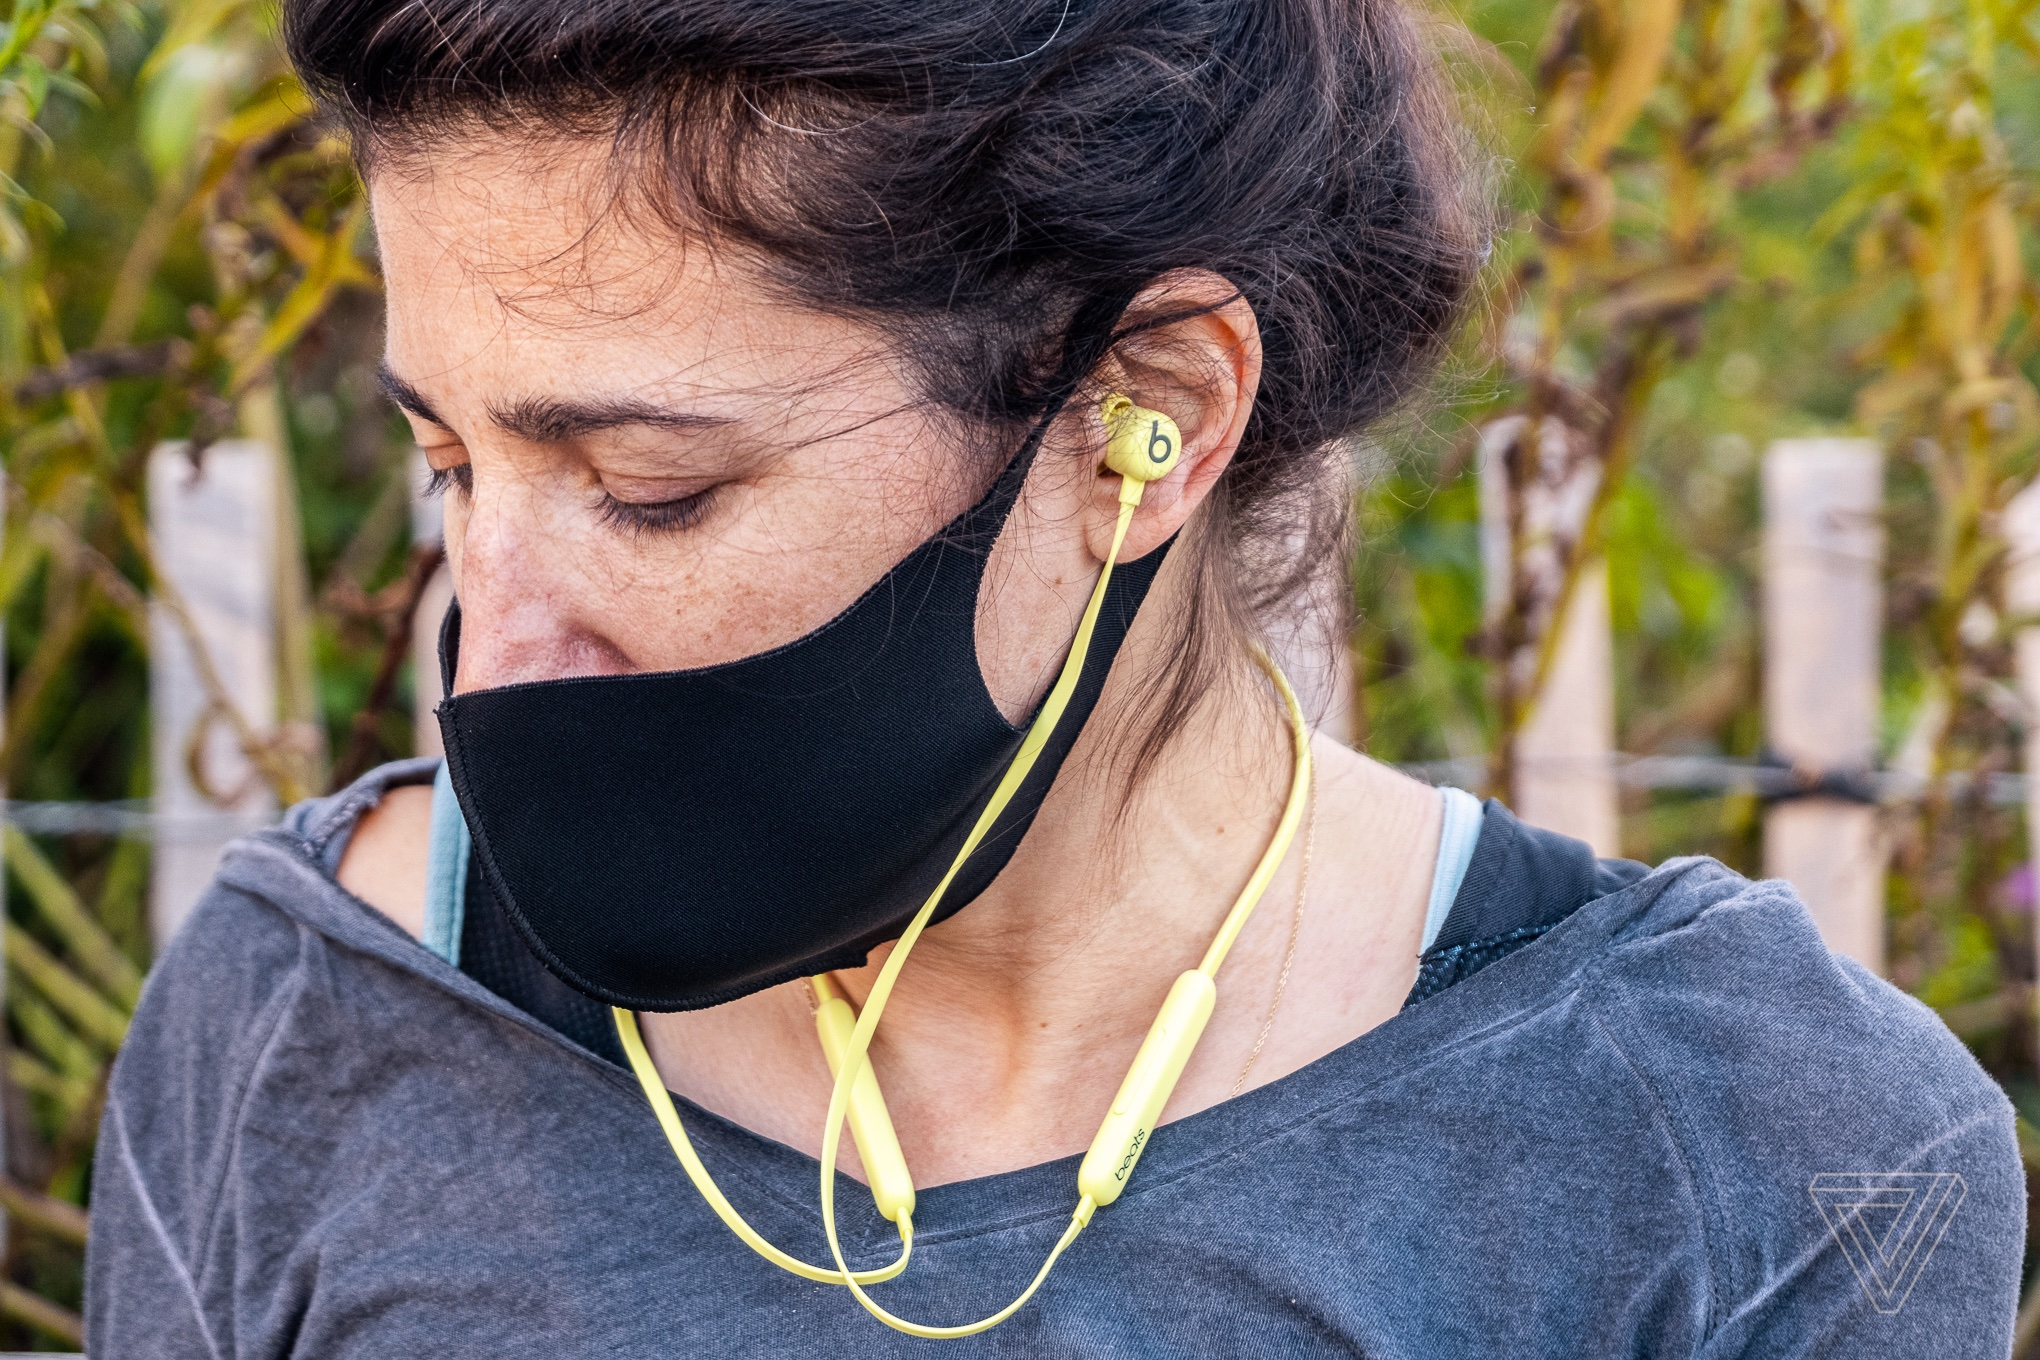 Apple's new Beats Flex earbuds, pictured in yellow.